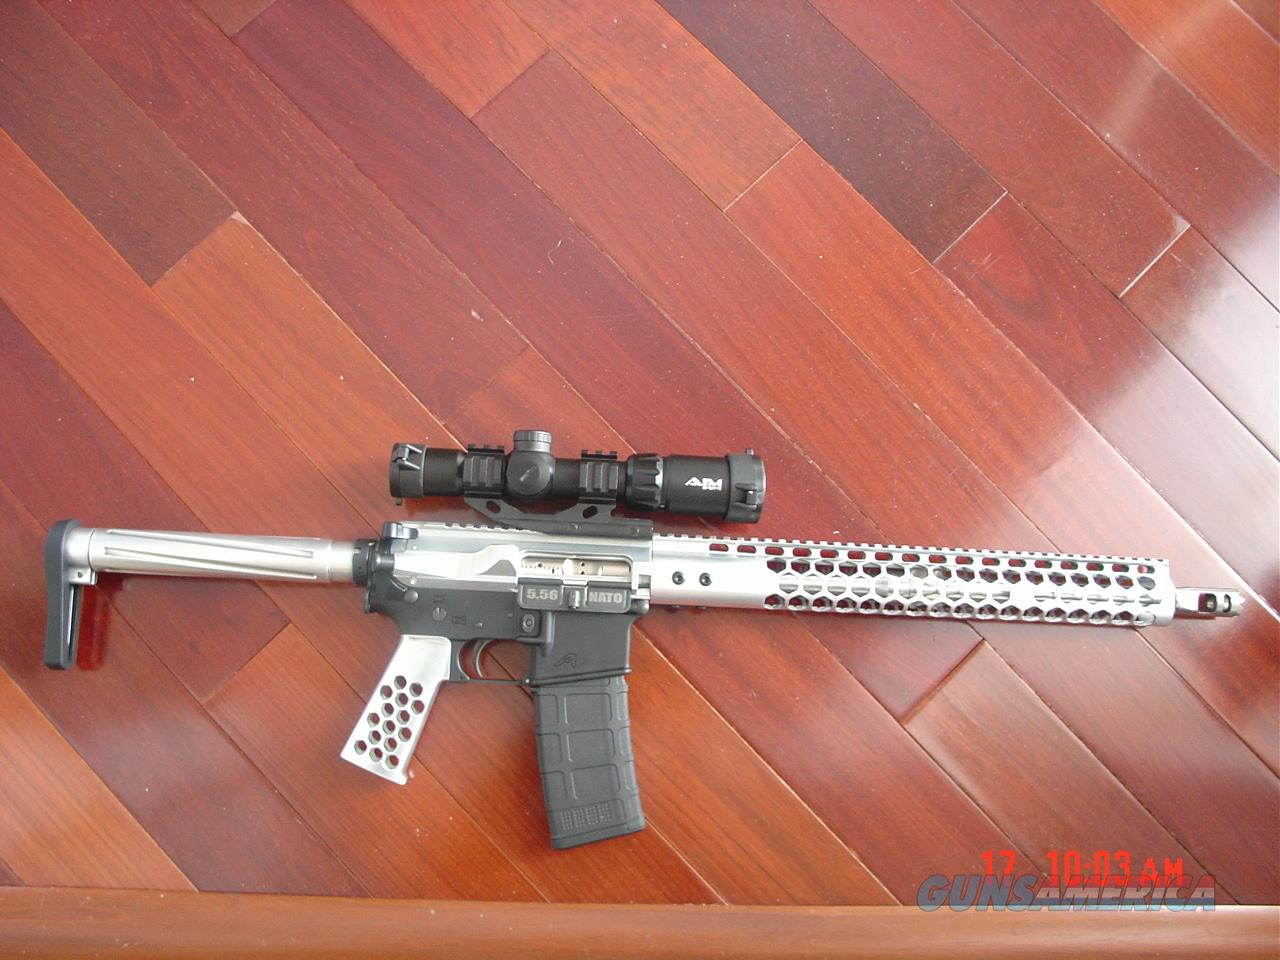 "Aero Precision X15 multi caliber,556 or 223,all aluminum,stainless or nickel, nice tri illuminated scope,16"",never fired,awesome showpiece !!  Guns > Rifles > AR-15 Rifles - Small Manufacturers > Complete Rifle"